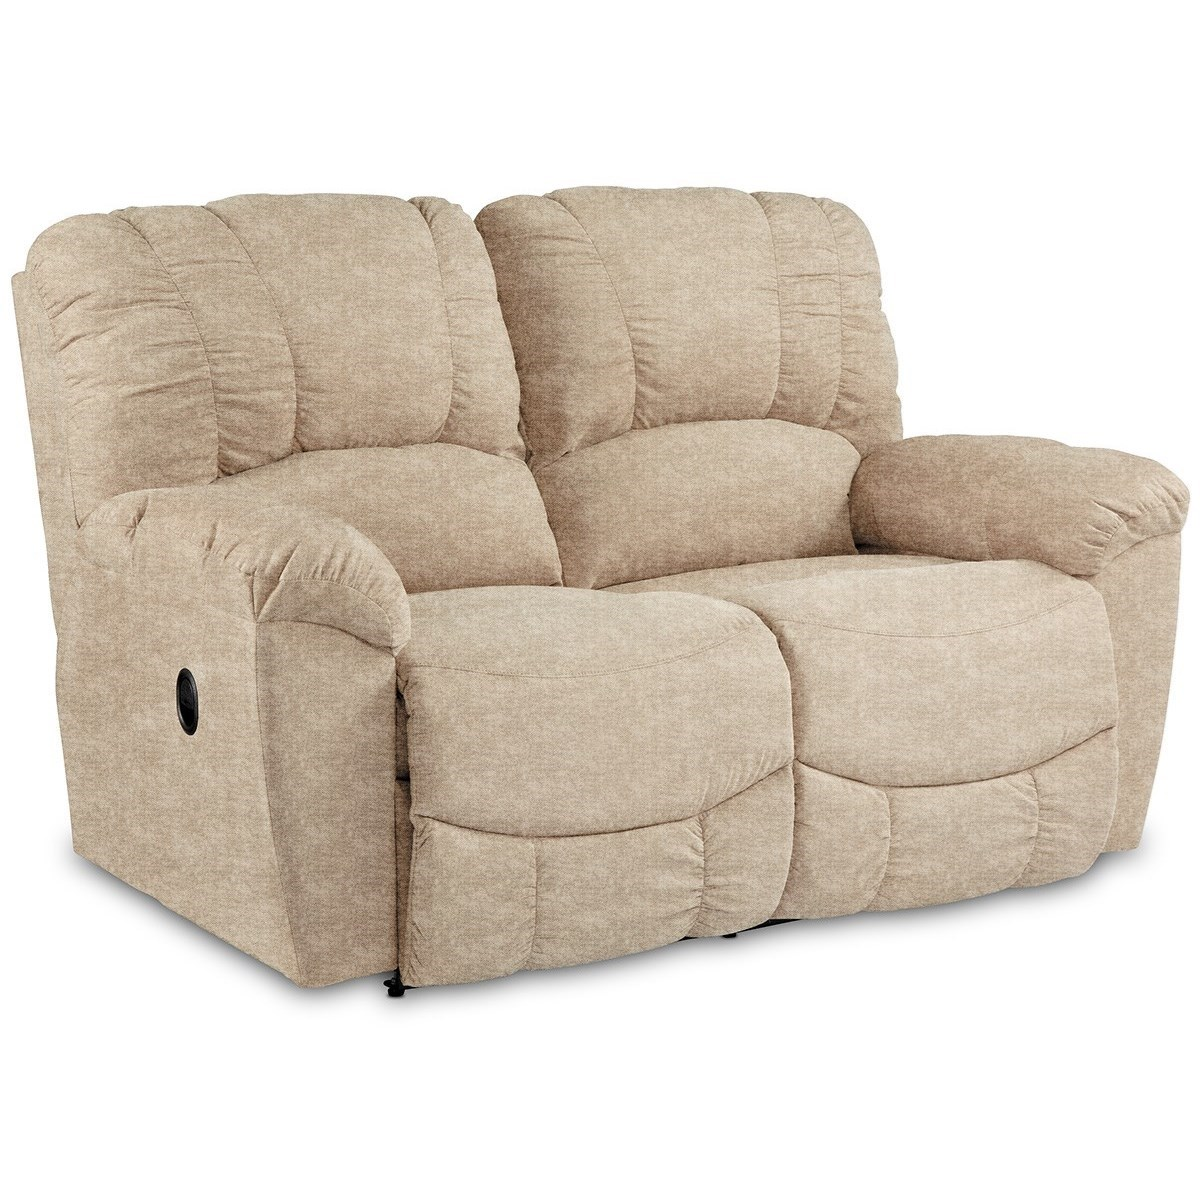 Hayes Reclining Loveseat by La-Z-Boy at Novello Home Furnishings